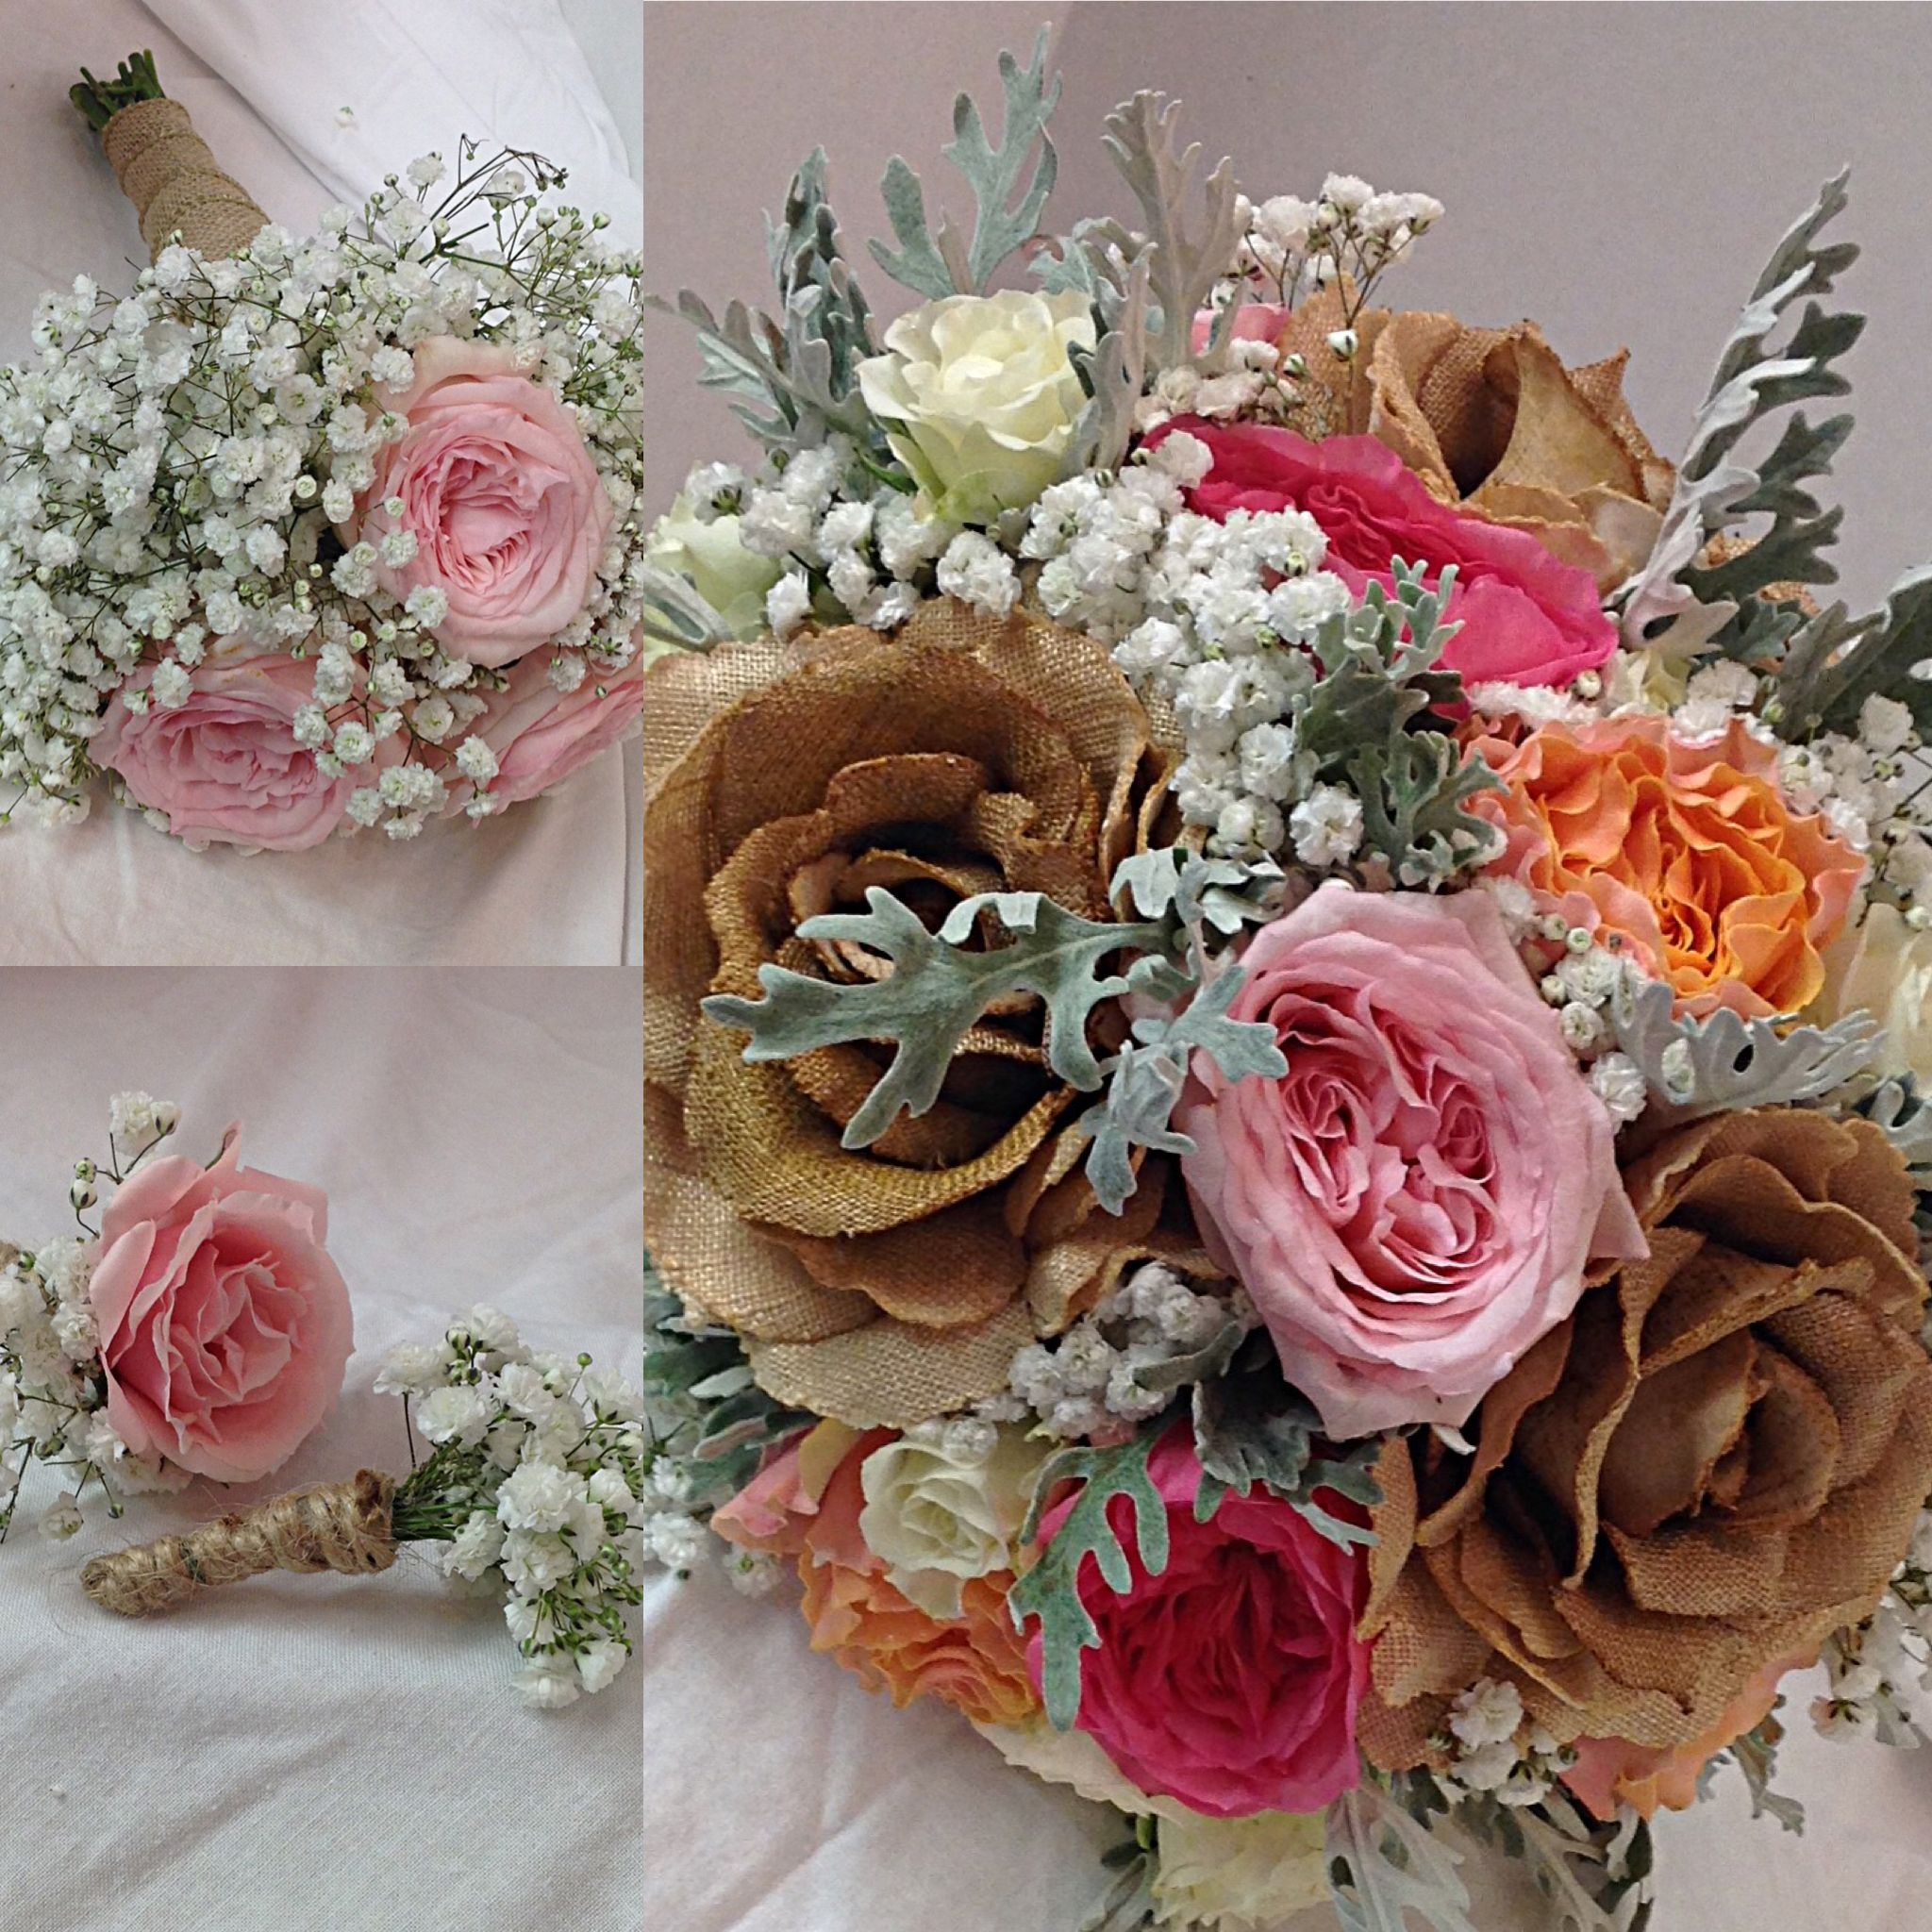 Fresh And Silk Flowers Working Together For The Bridal Bouquet